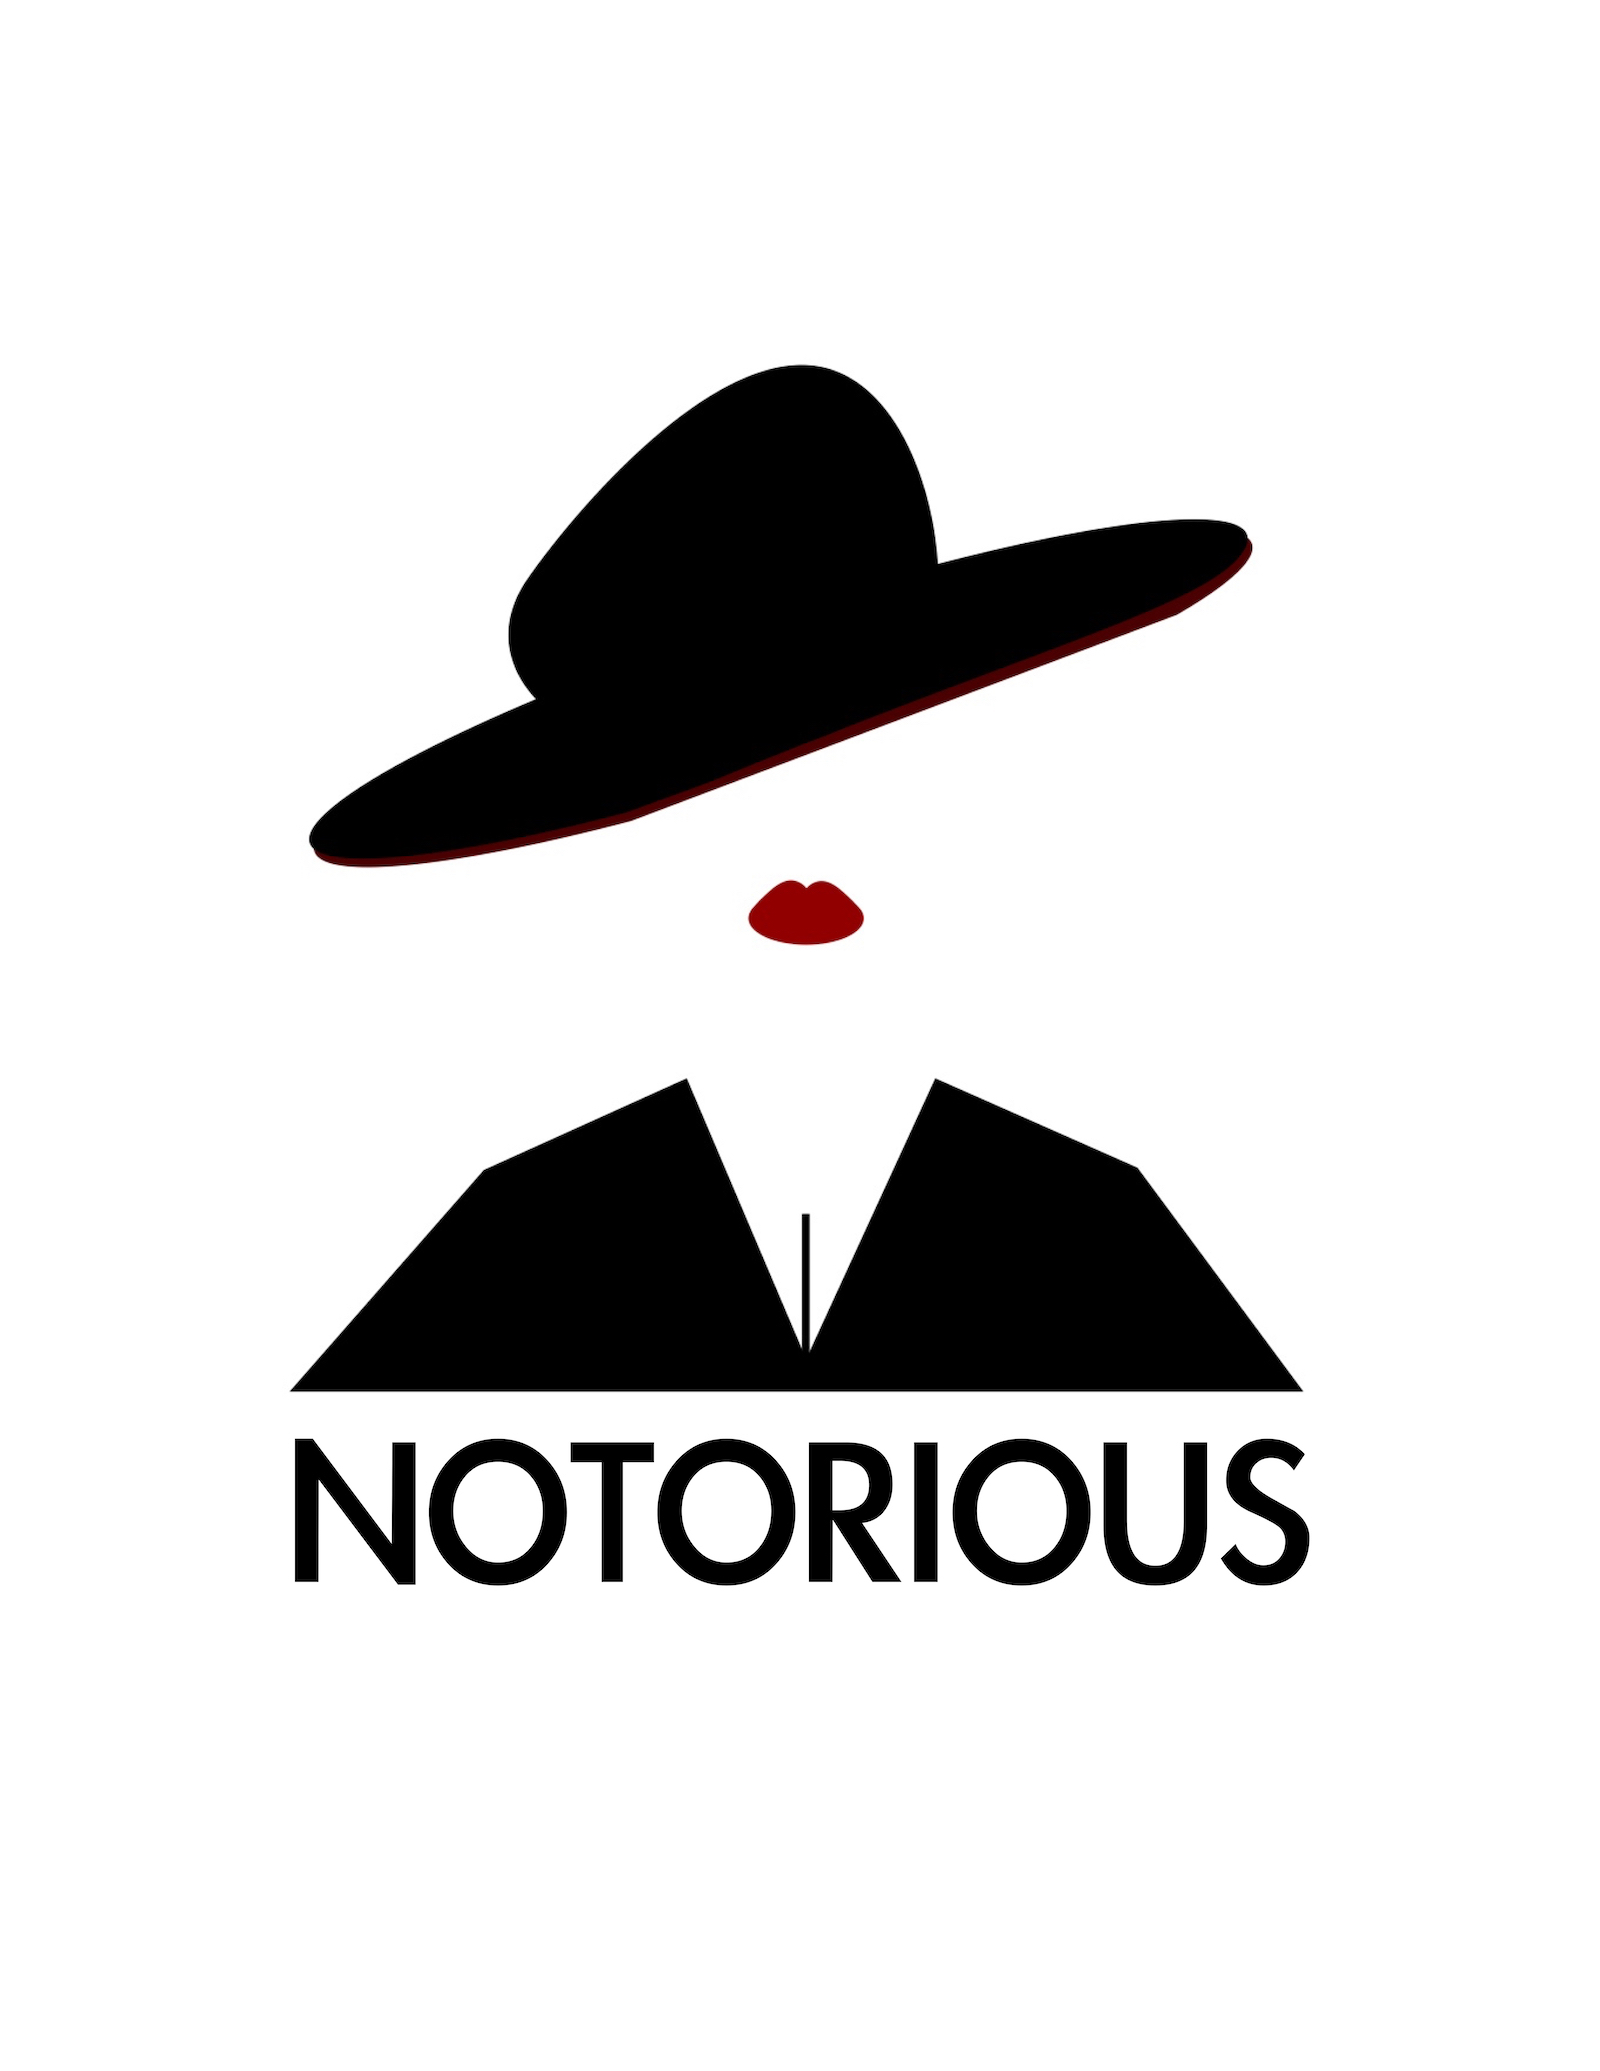 Notorious iTunes Image7.jpeg